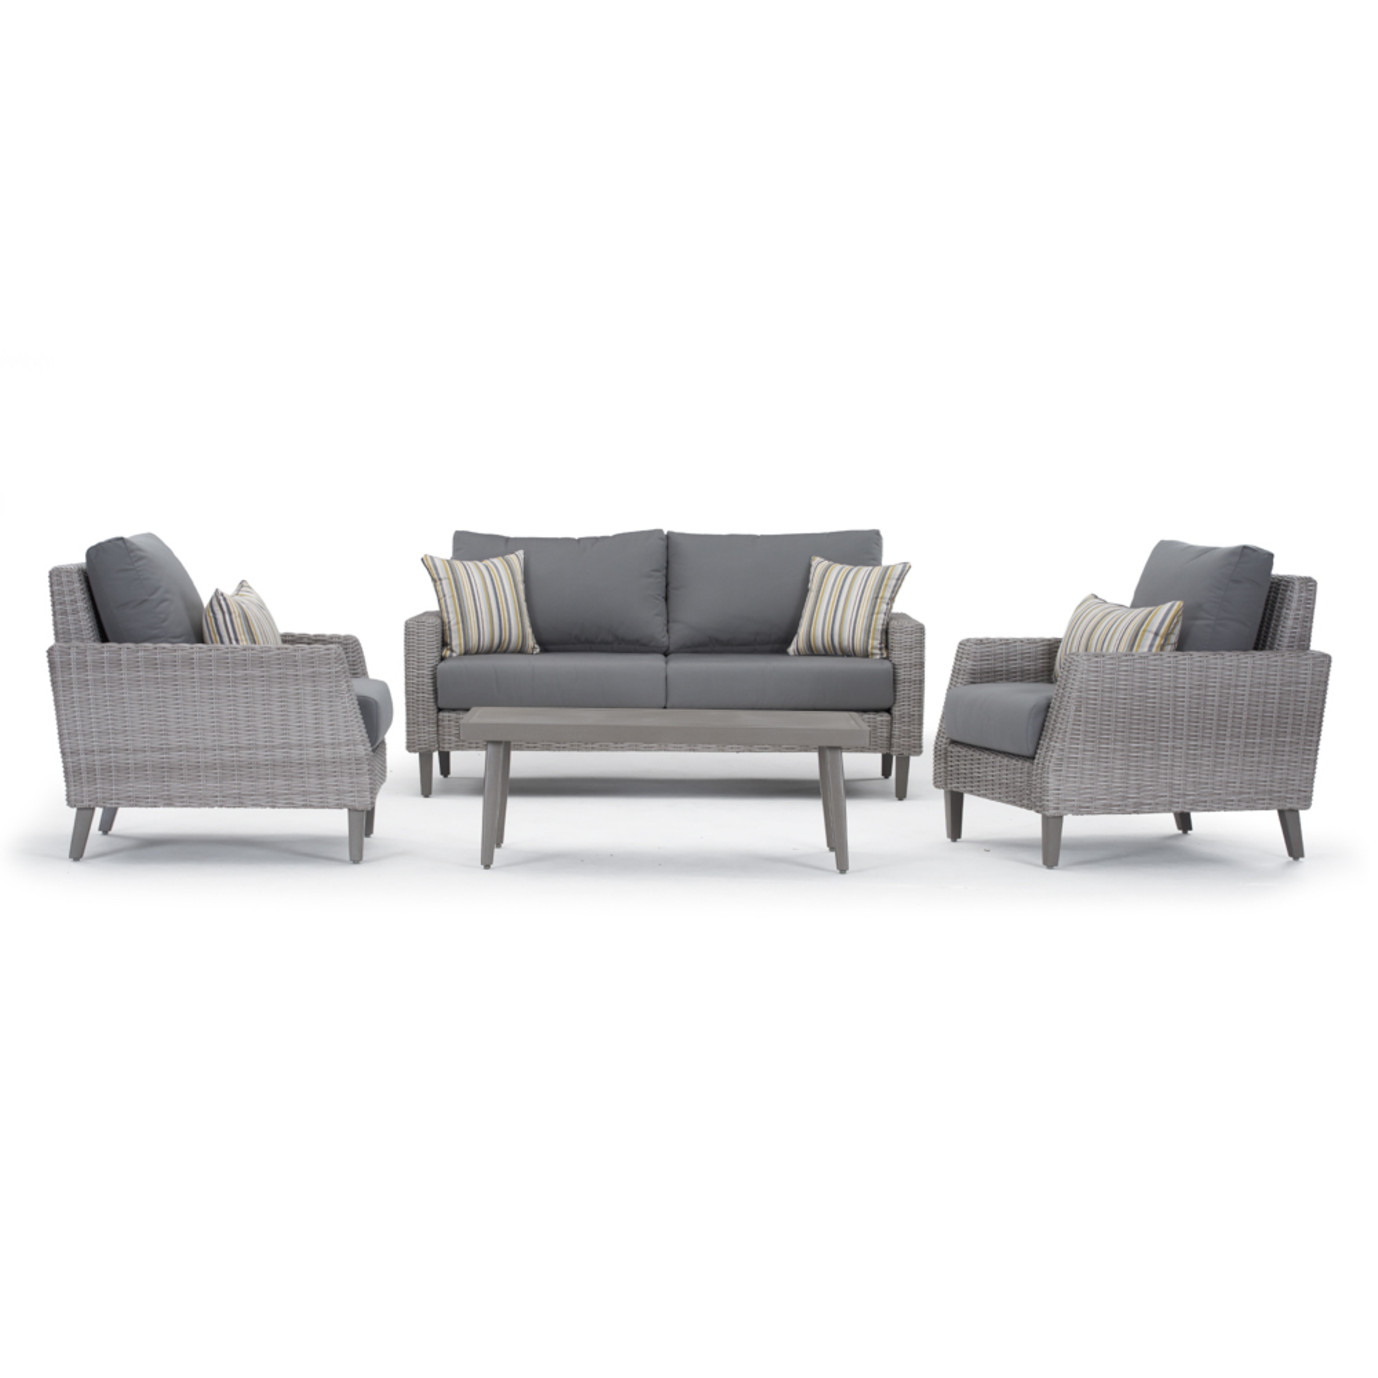 Portofino Affinity 4pc Loveseat Group - Charcoal Gray